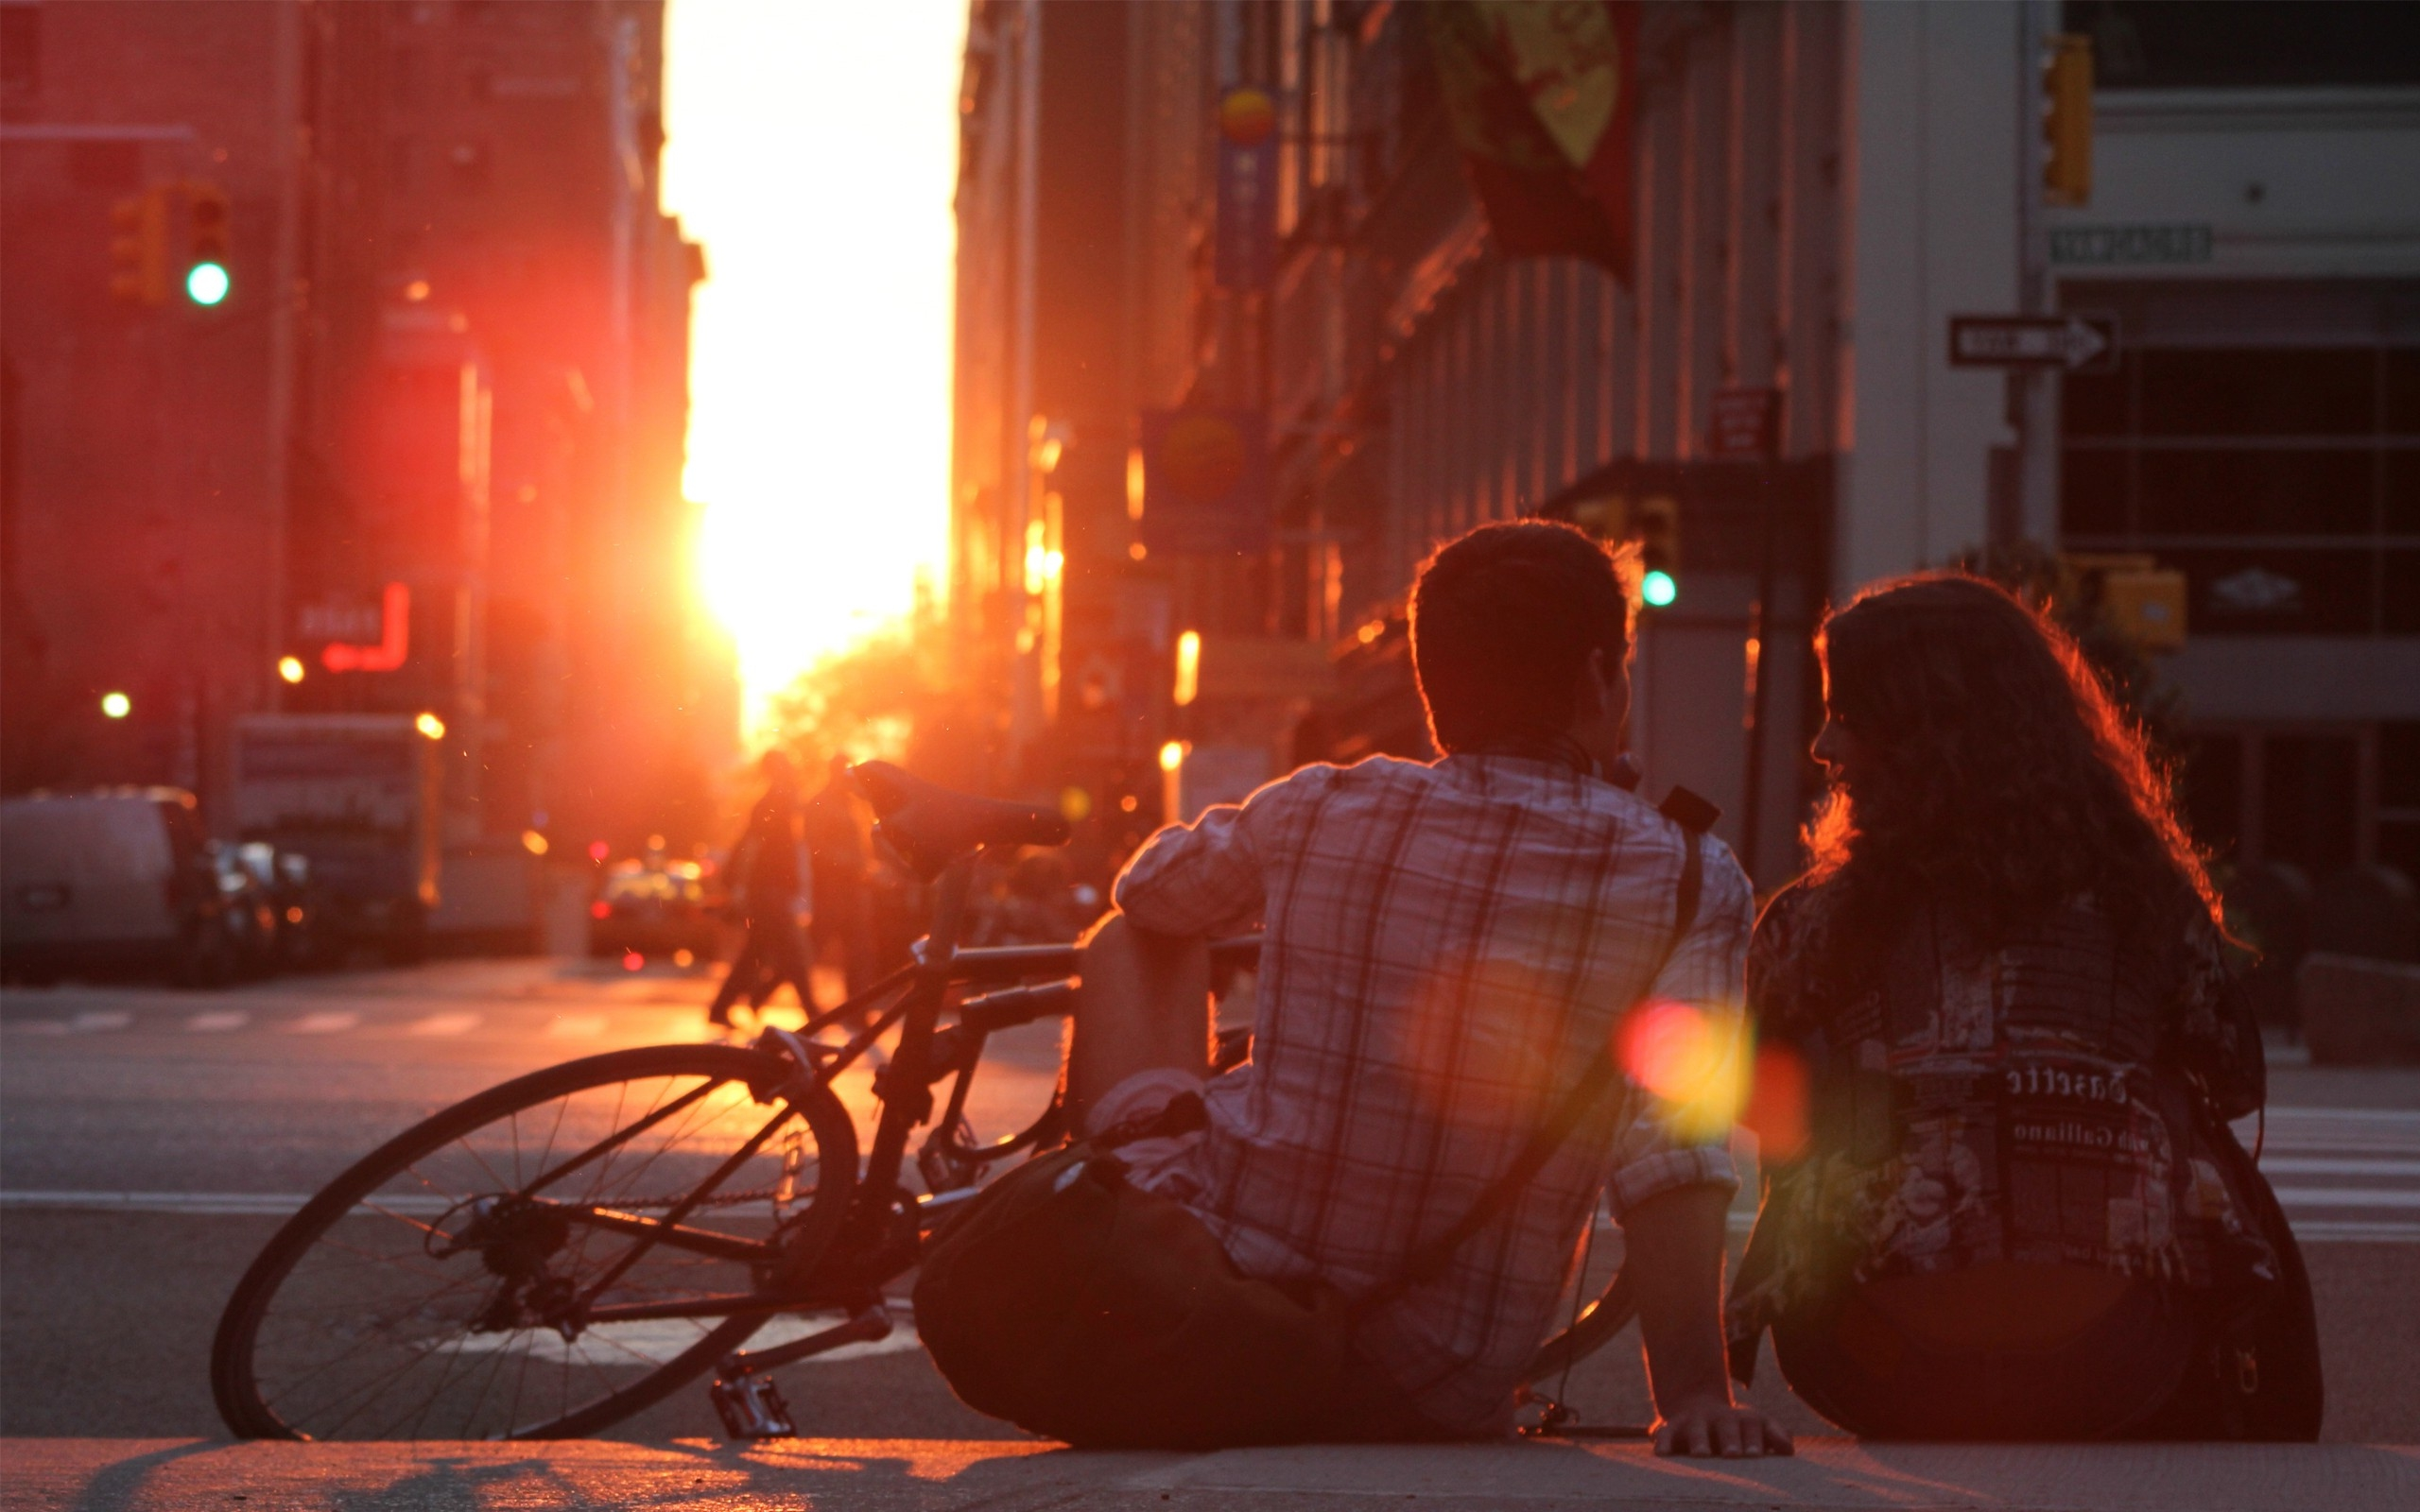 Full Hd Girl And Boy Love Wallpaper New York City Love In Sunset Wallpapers Hd Desktop And